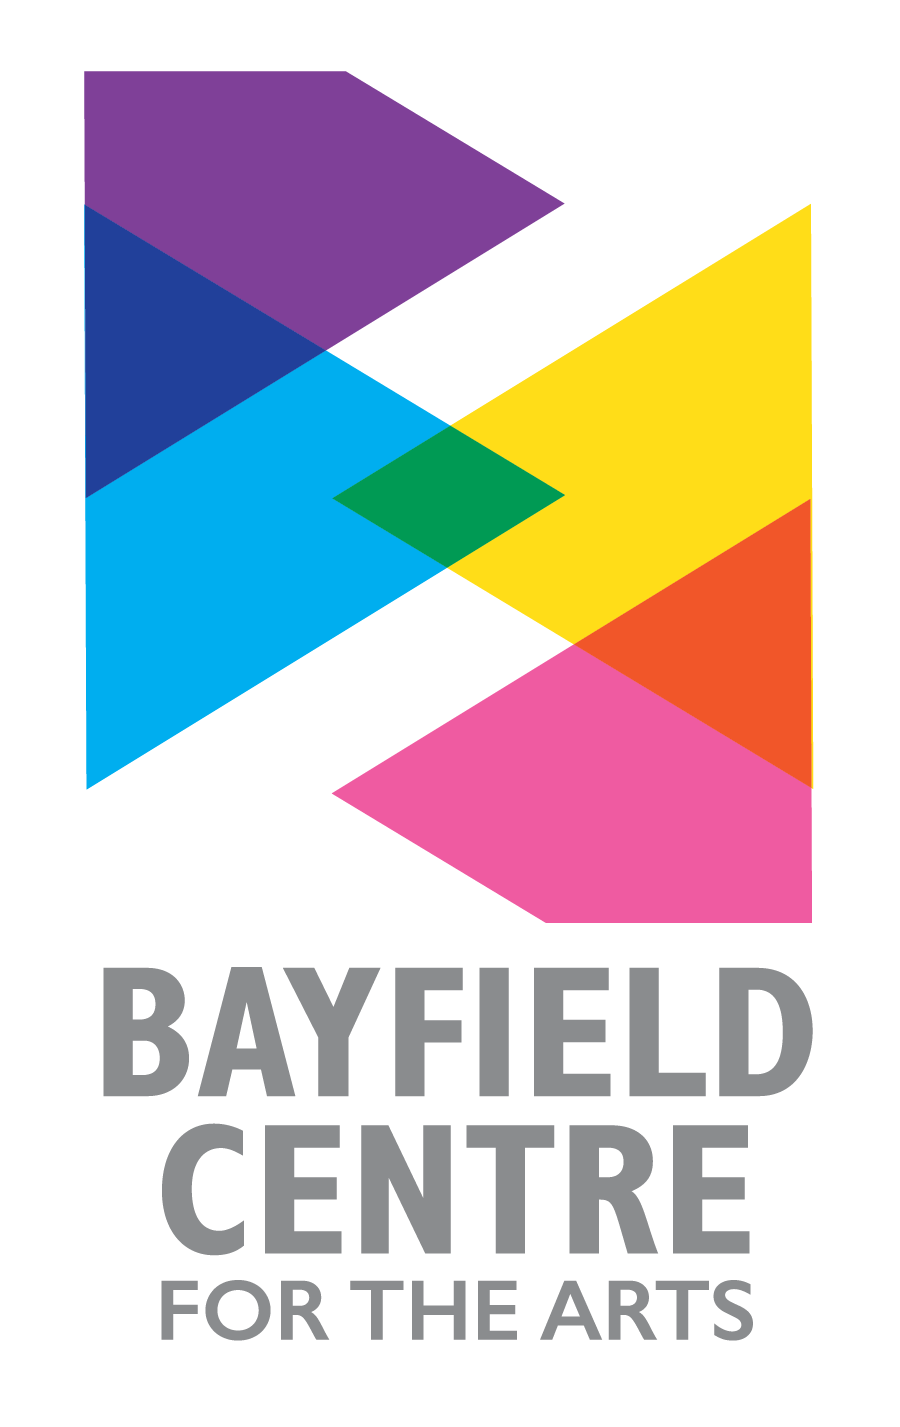 Bayfield Centre For The Arts Logo